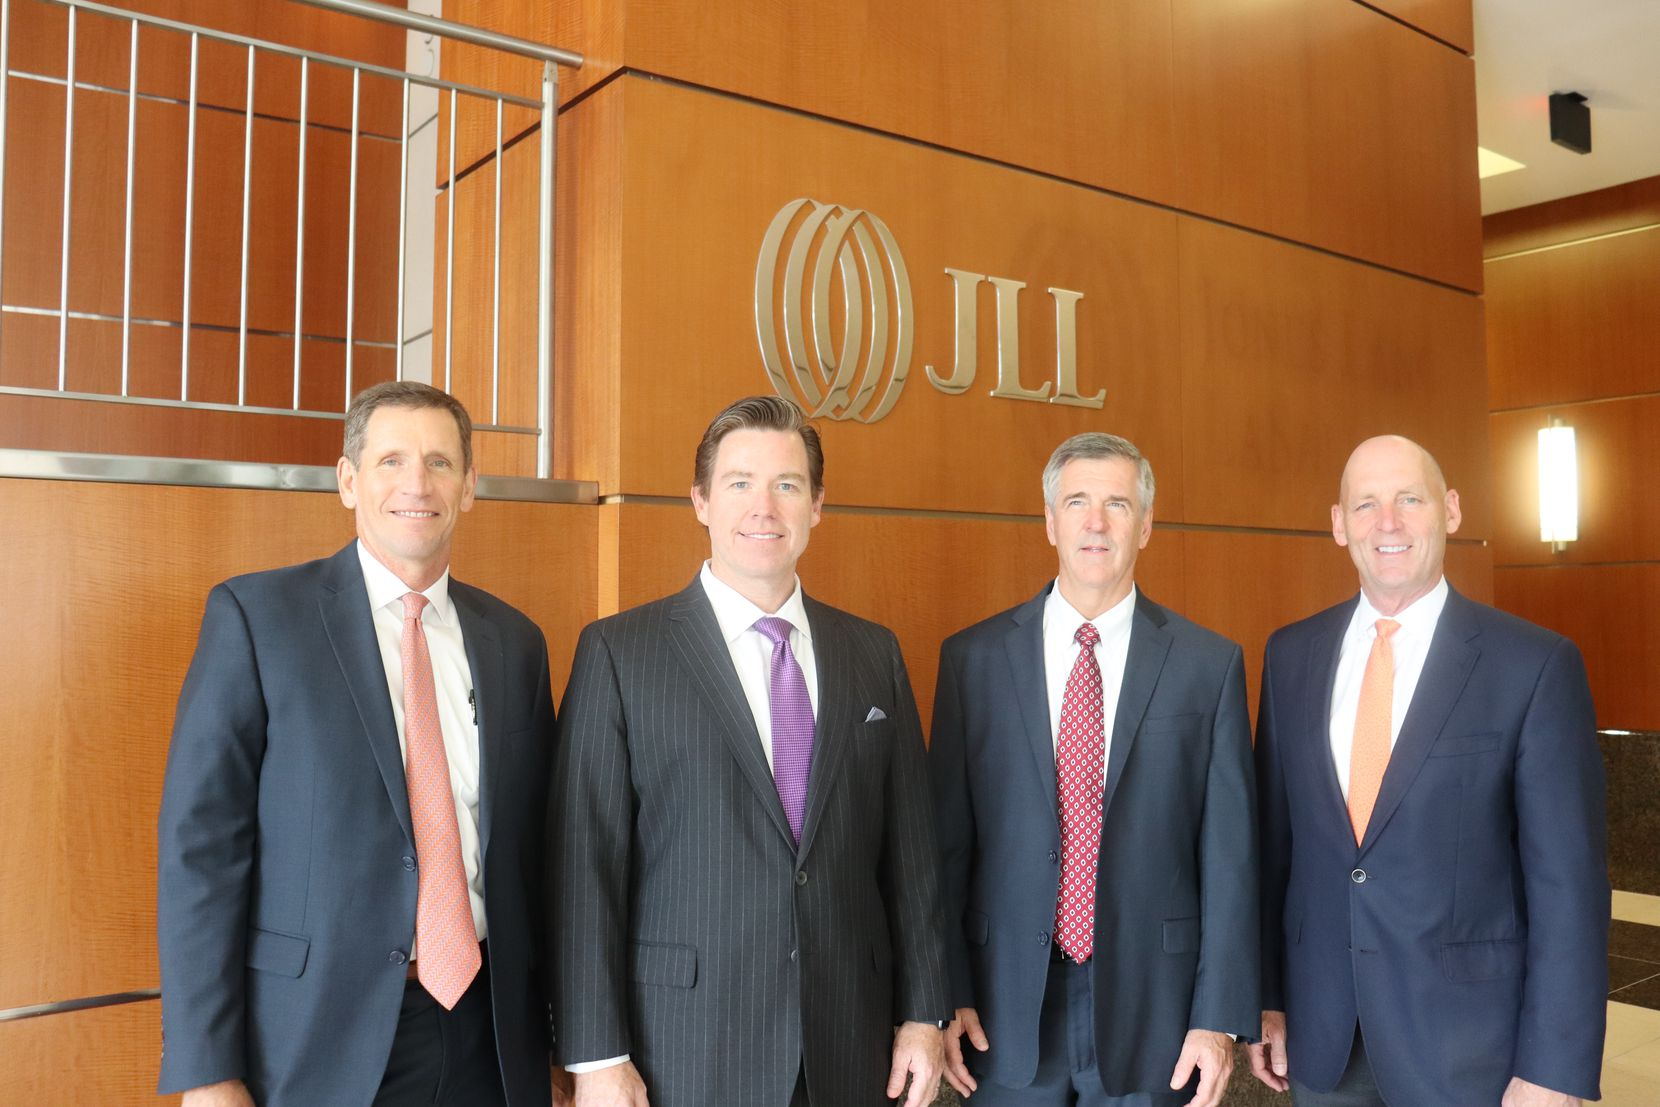 T.D. Briggs, David Carroll, John Myers and Joel Pustmueller are now all part of JLL's Texas operation.